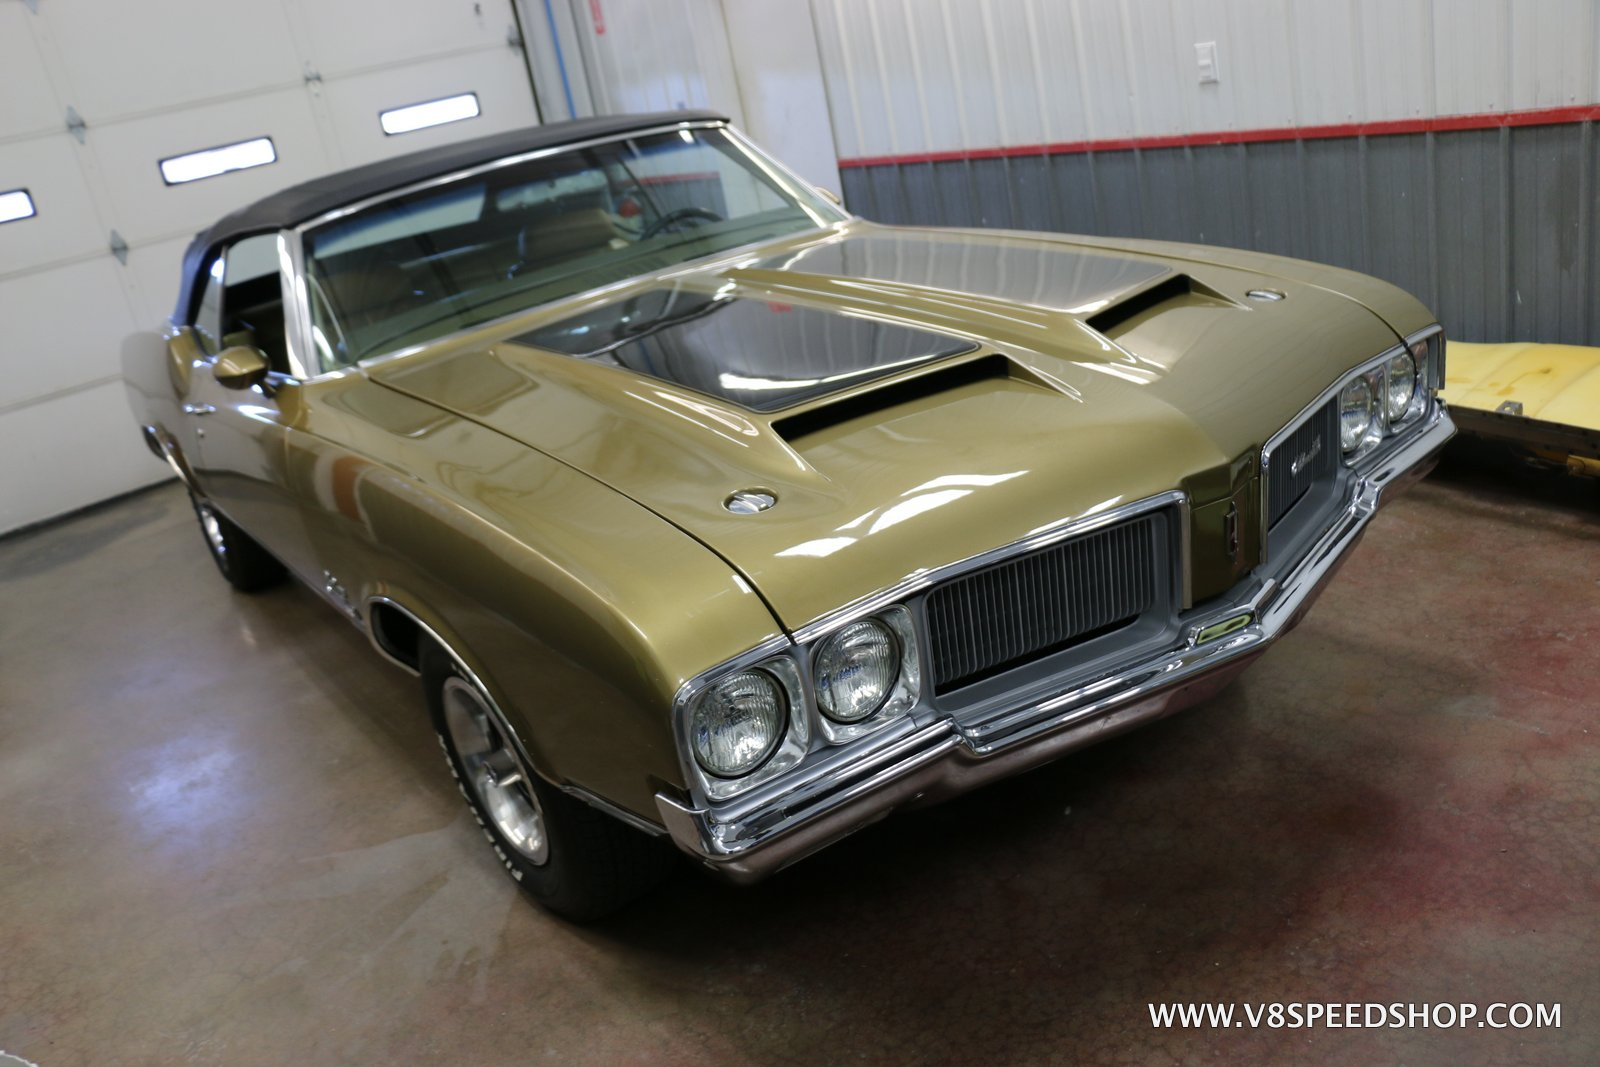 1970 Oldsmobile Cutlass Convertible Fuel Injection at V8 Speed & Resto Shop